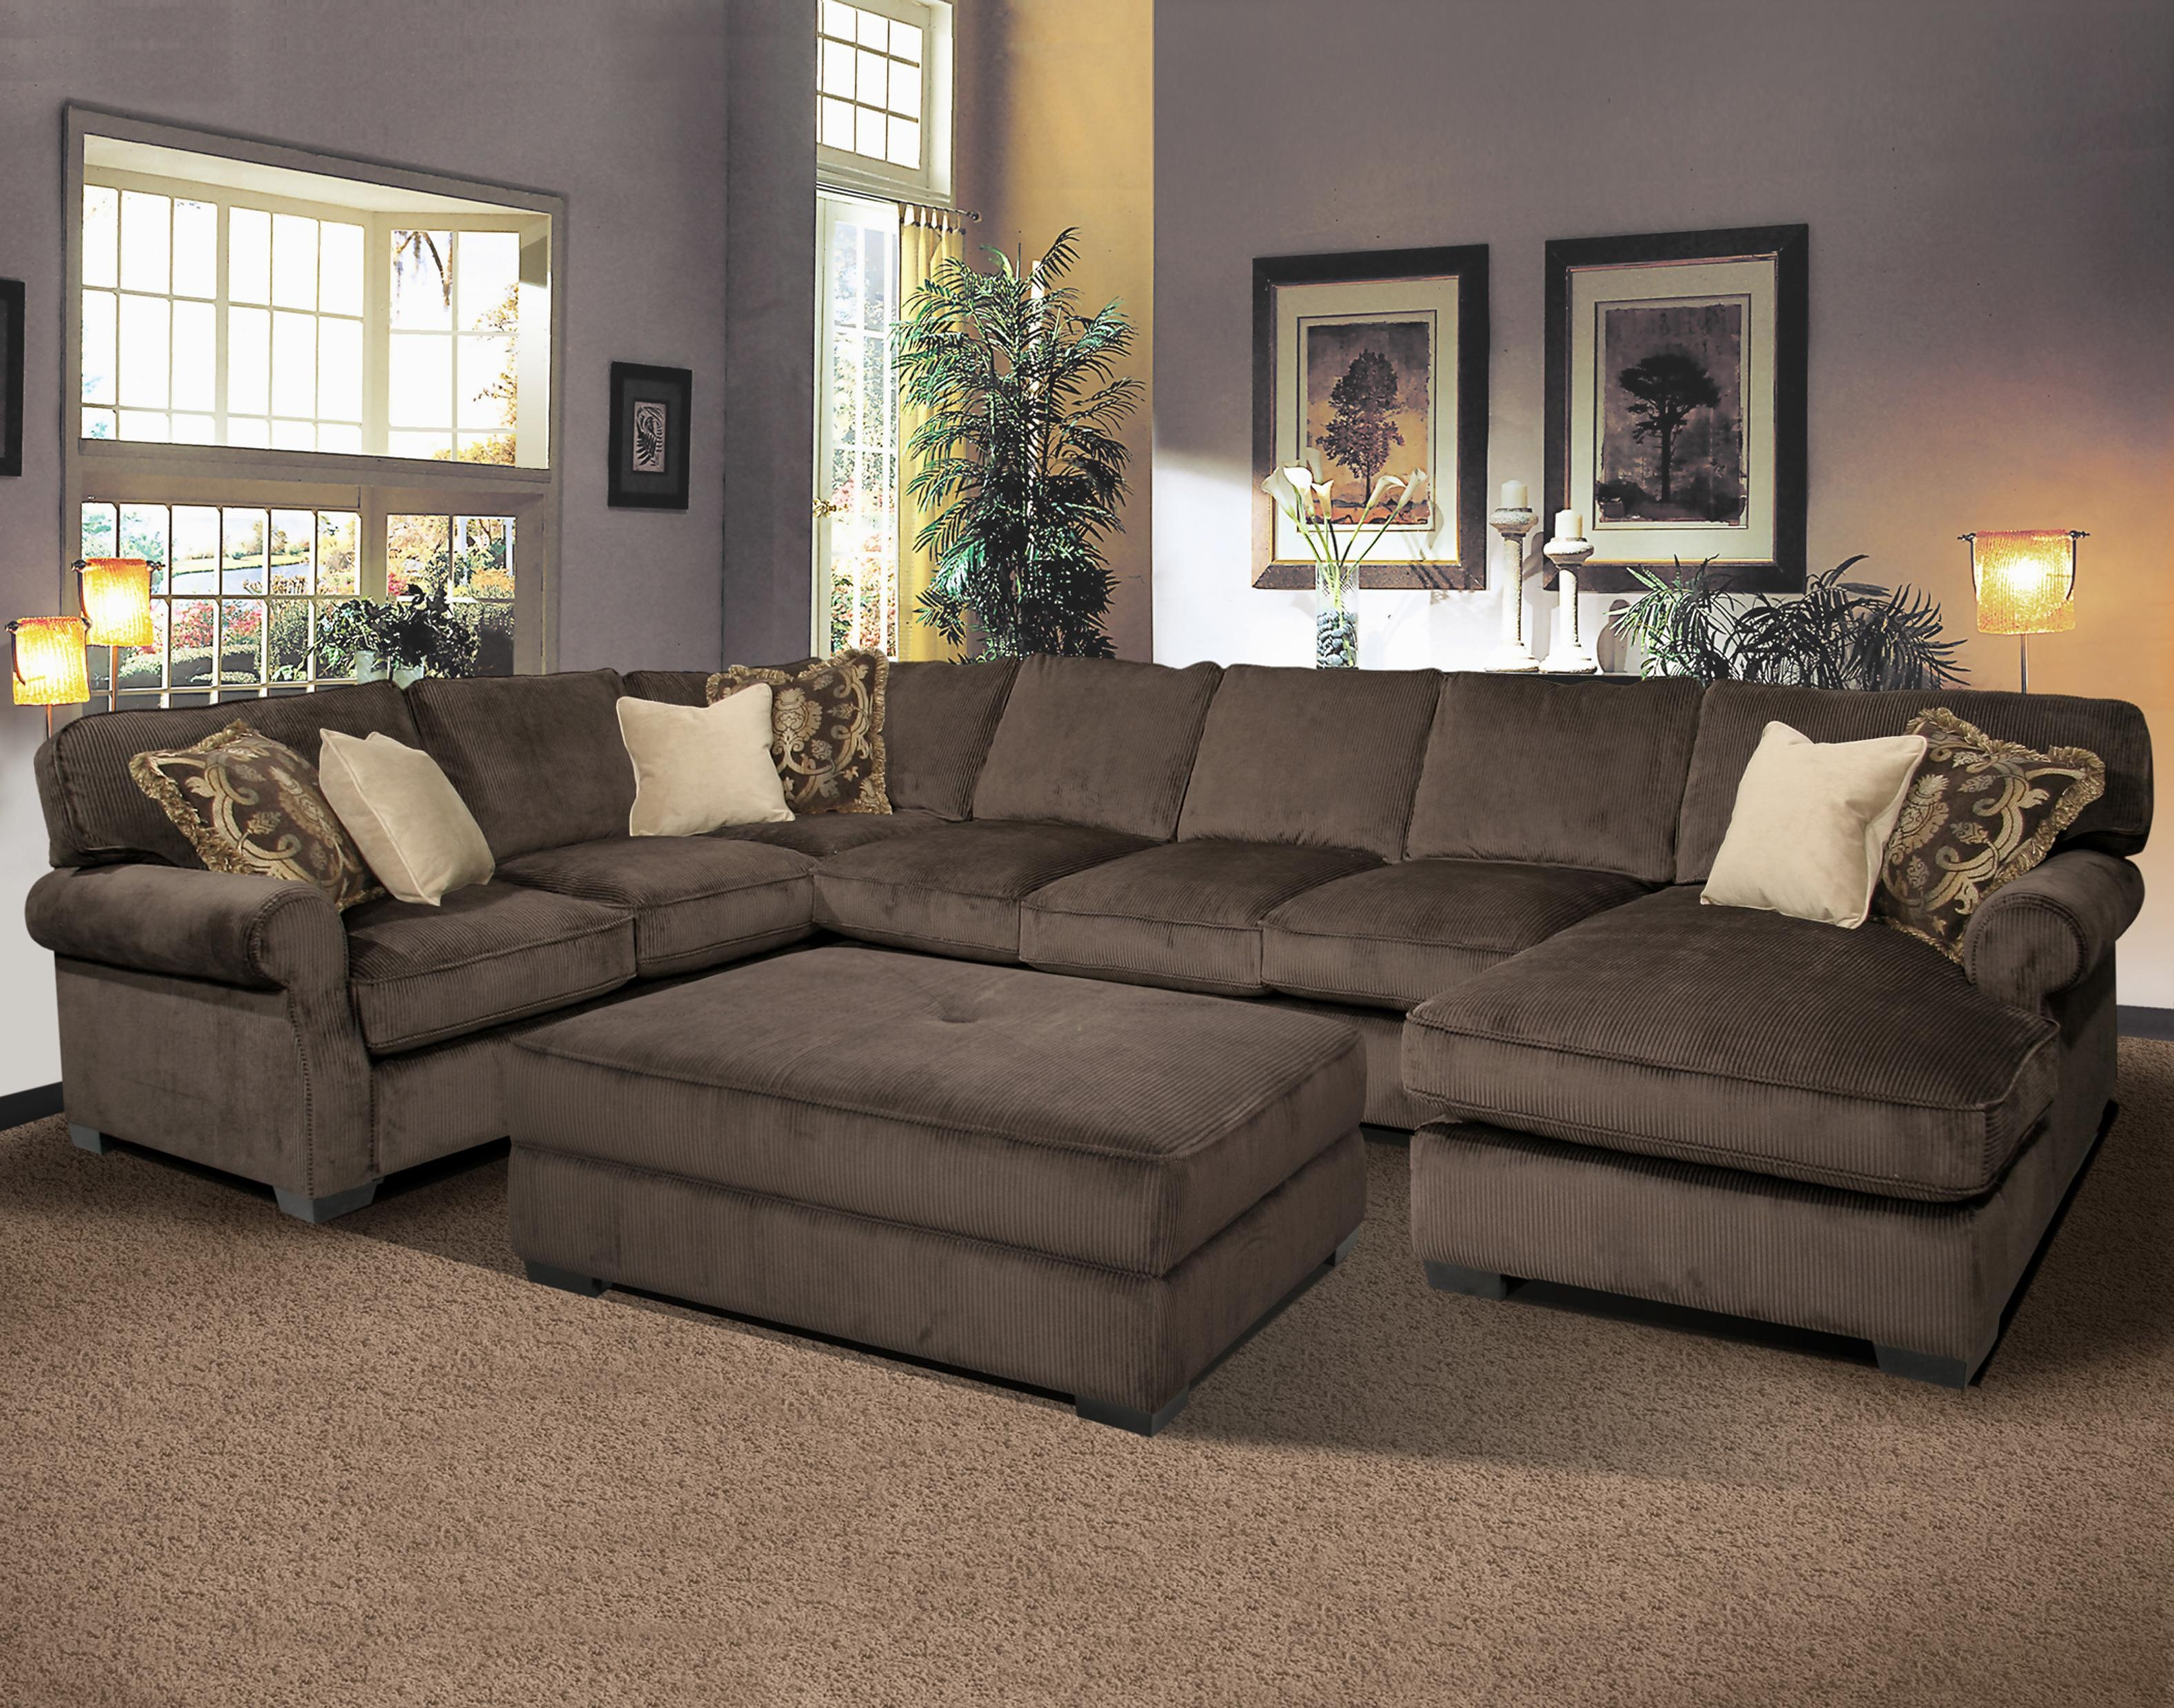 20 best large comfortable sectional sofas sofa ideas for Best sofa for small living room